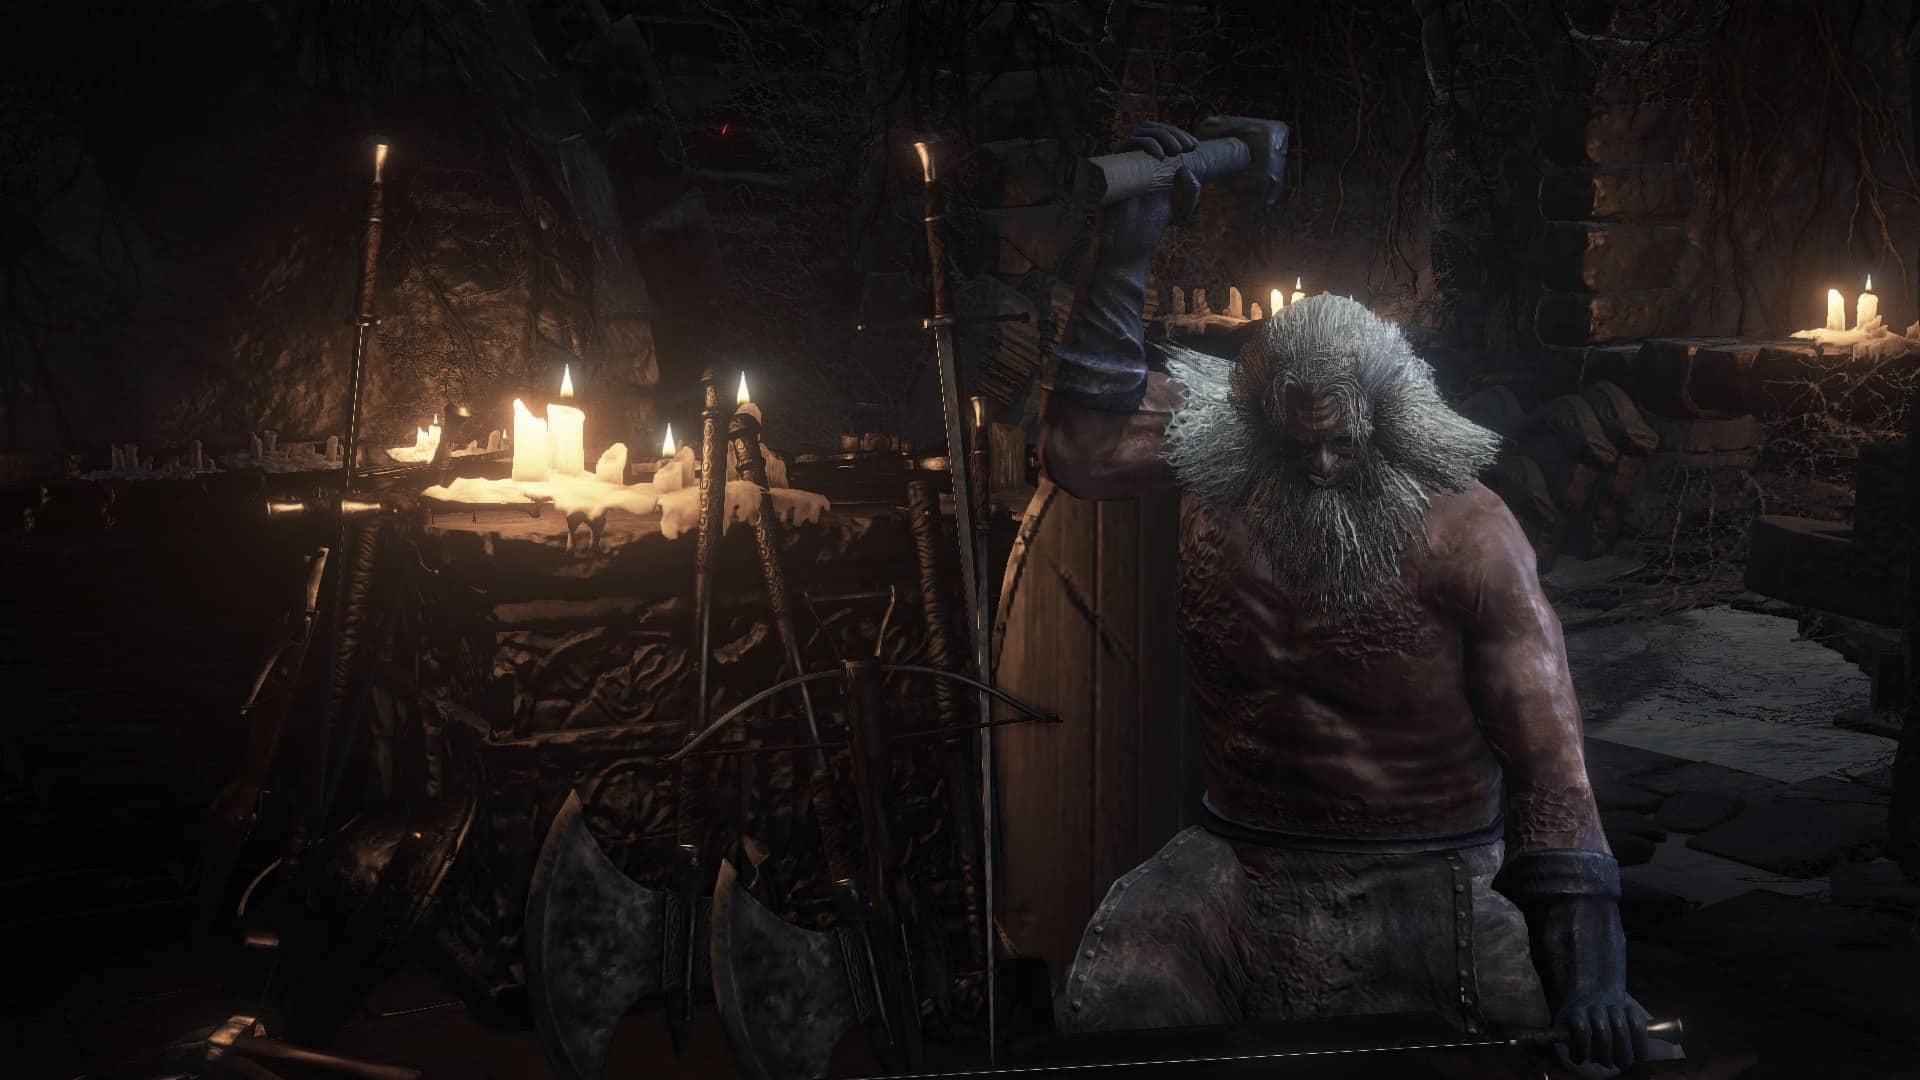 Dark Souls Iii Lore Rundown Character Cameos Popoptiq A janet doesn't mind the lack of view. dark souls iii lore rundown character